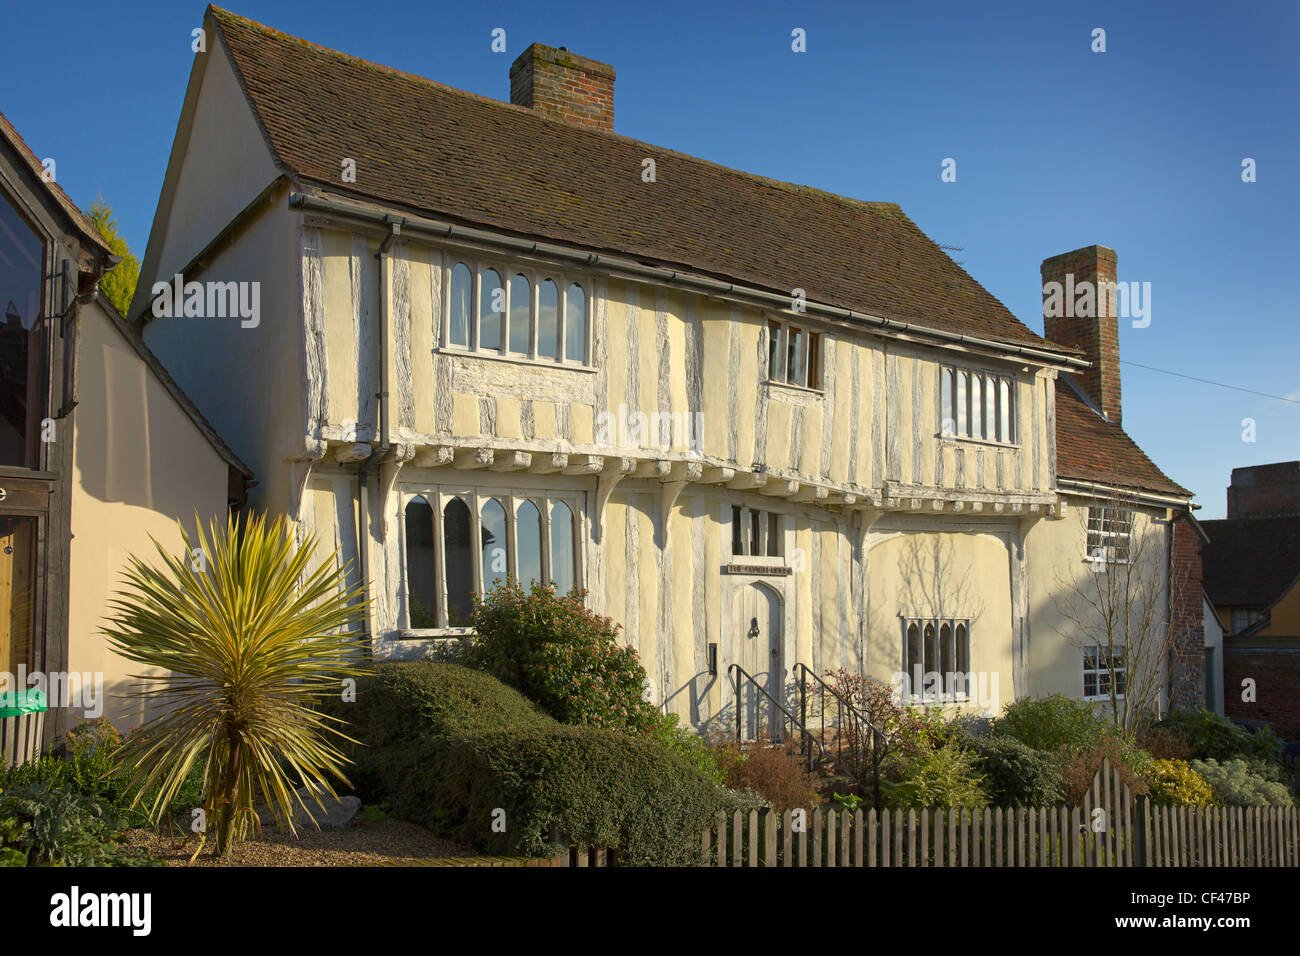 A traditional timber framed coach house in Lavenham. - Stock Image